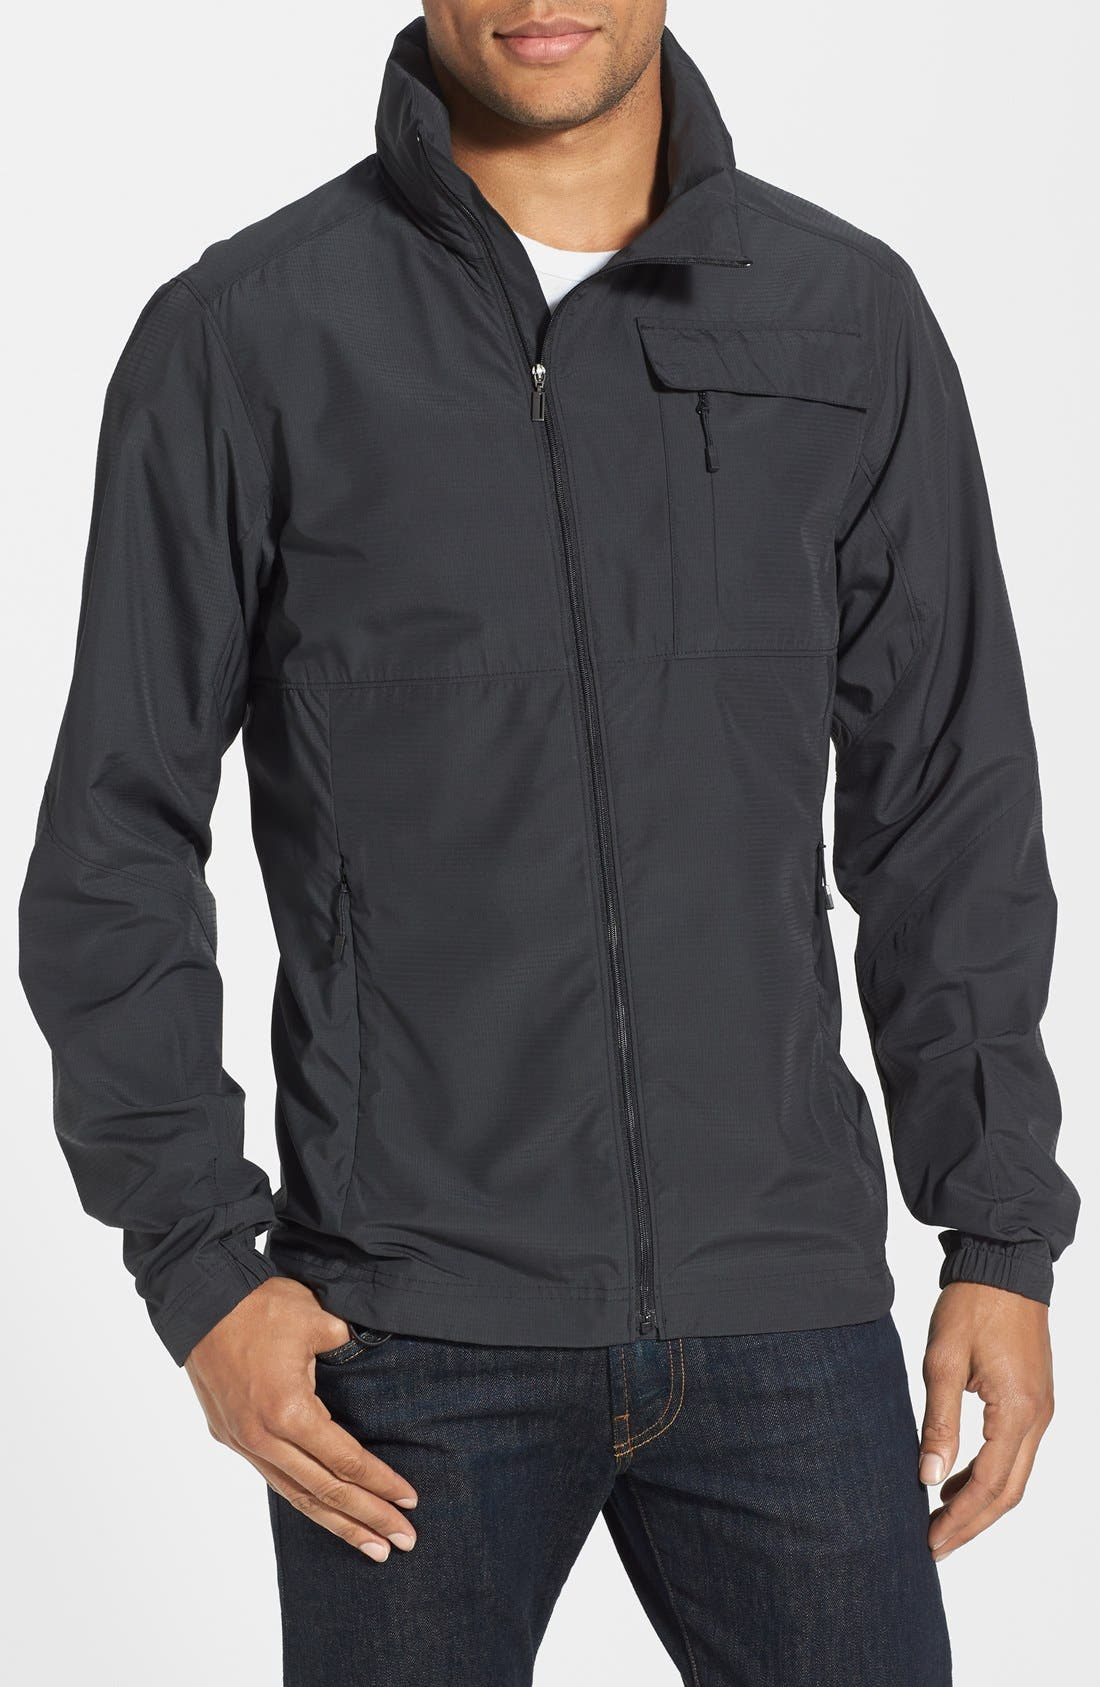 Alternate Image 1 Selected - Nau 'Lightbeam' Water Resistant Full Zip Jacket